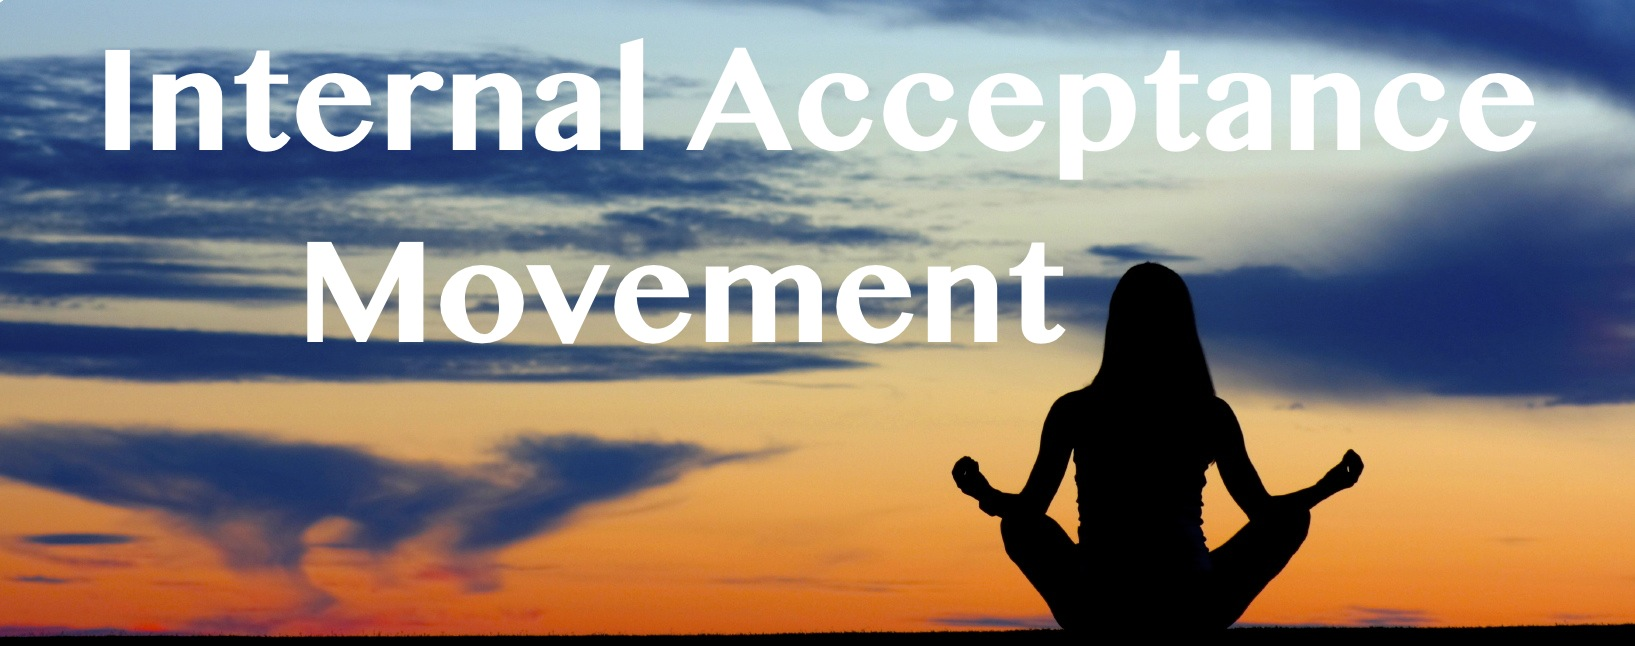 Internal Acceptance Movement